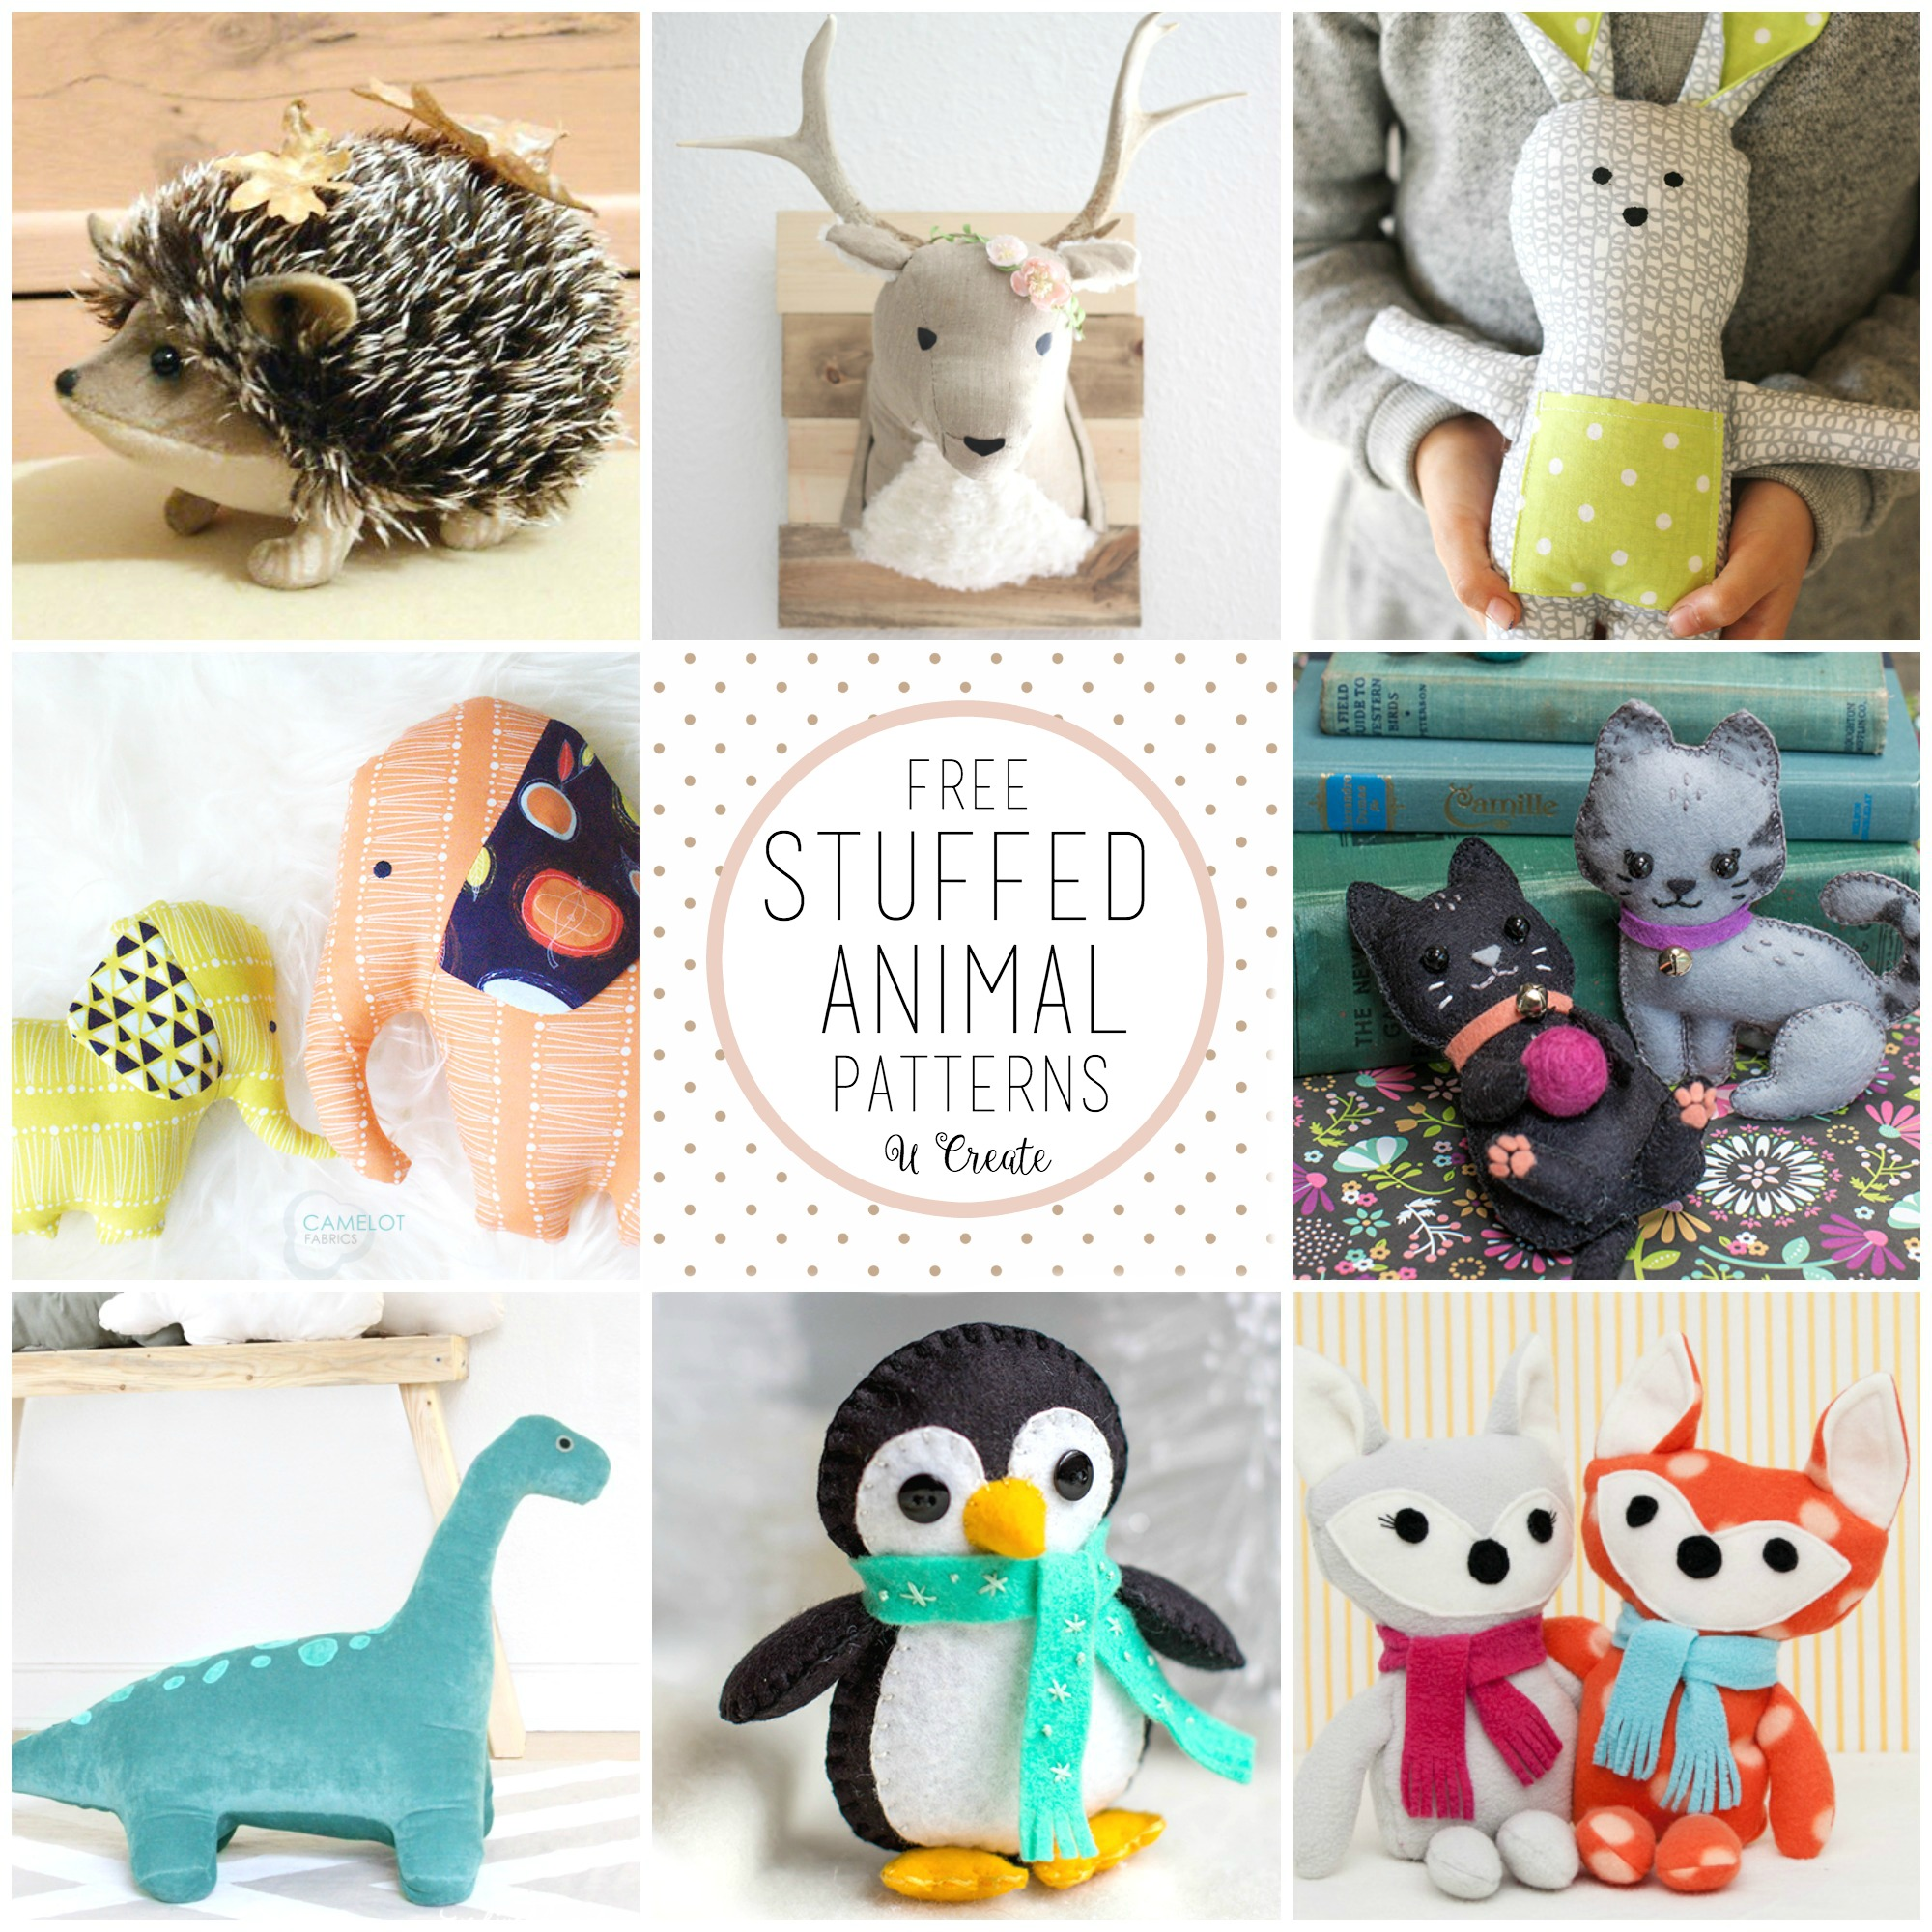 FREE STUFFED ANIMAL PATTERNS THE CUTEST Stuffed Animal Tutorials